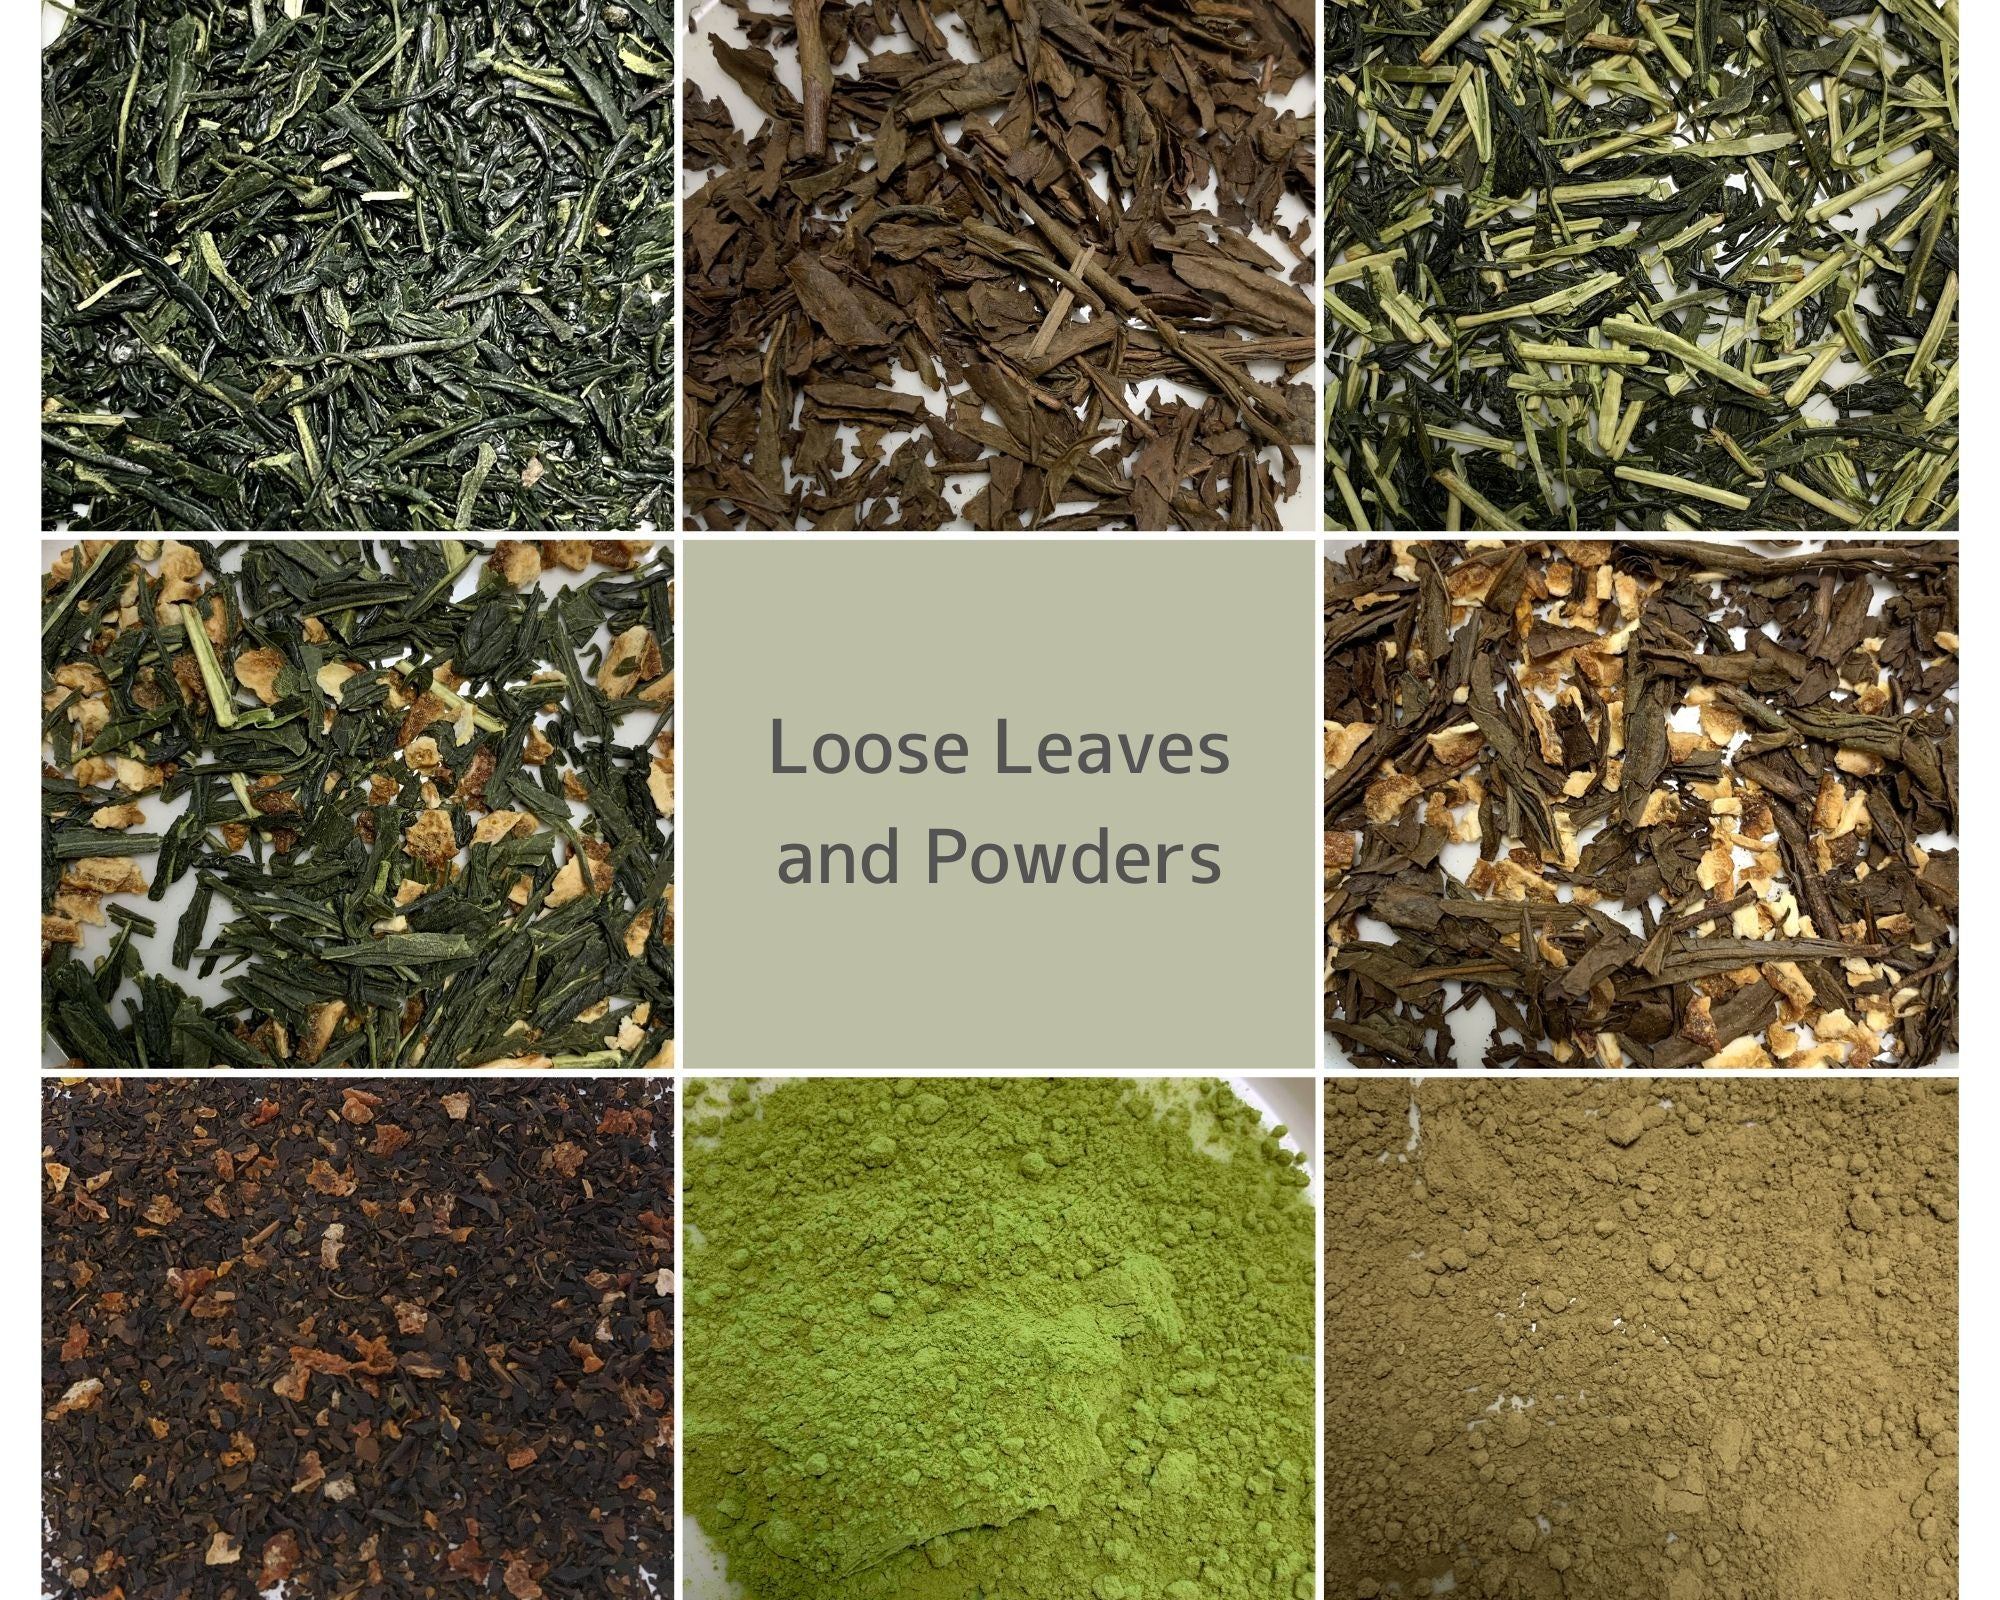 greentea_wholesale_leaves_and_powders